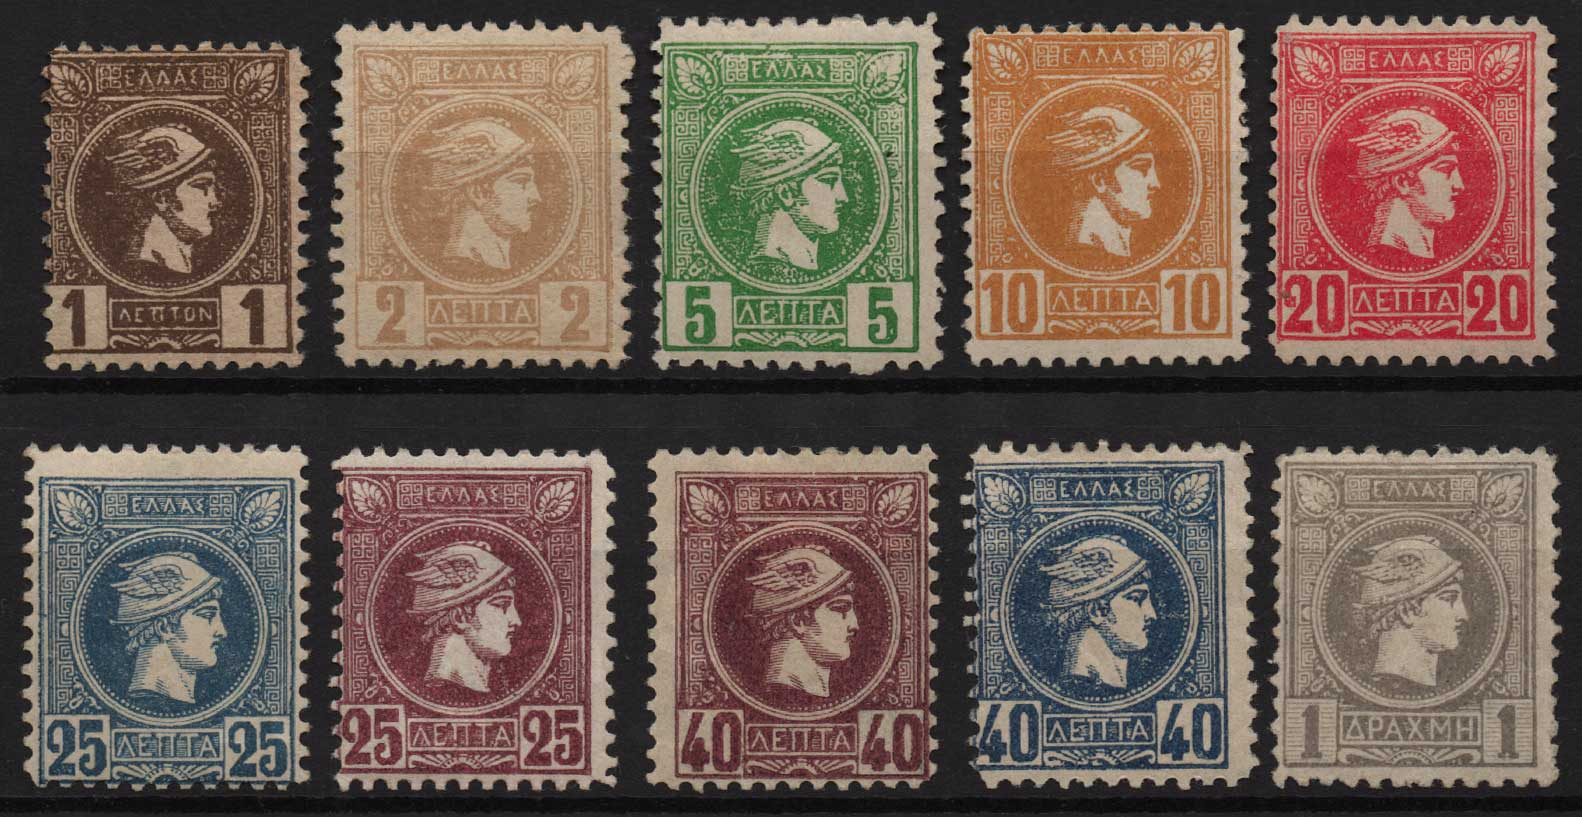 Lot 459 - -  SMALL HERMES HEAD ATHENSPRINTING - 2nd PERIOD -  Athens Auctions Public Auction 77 General Stamp Sale